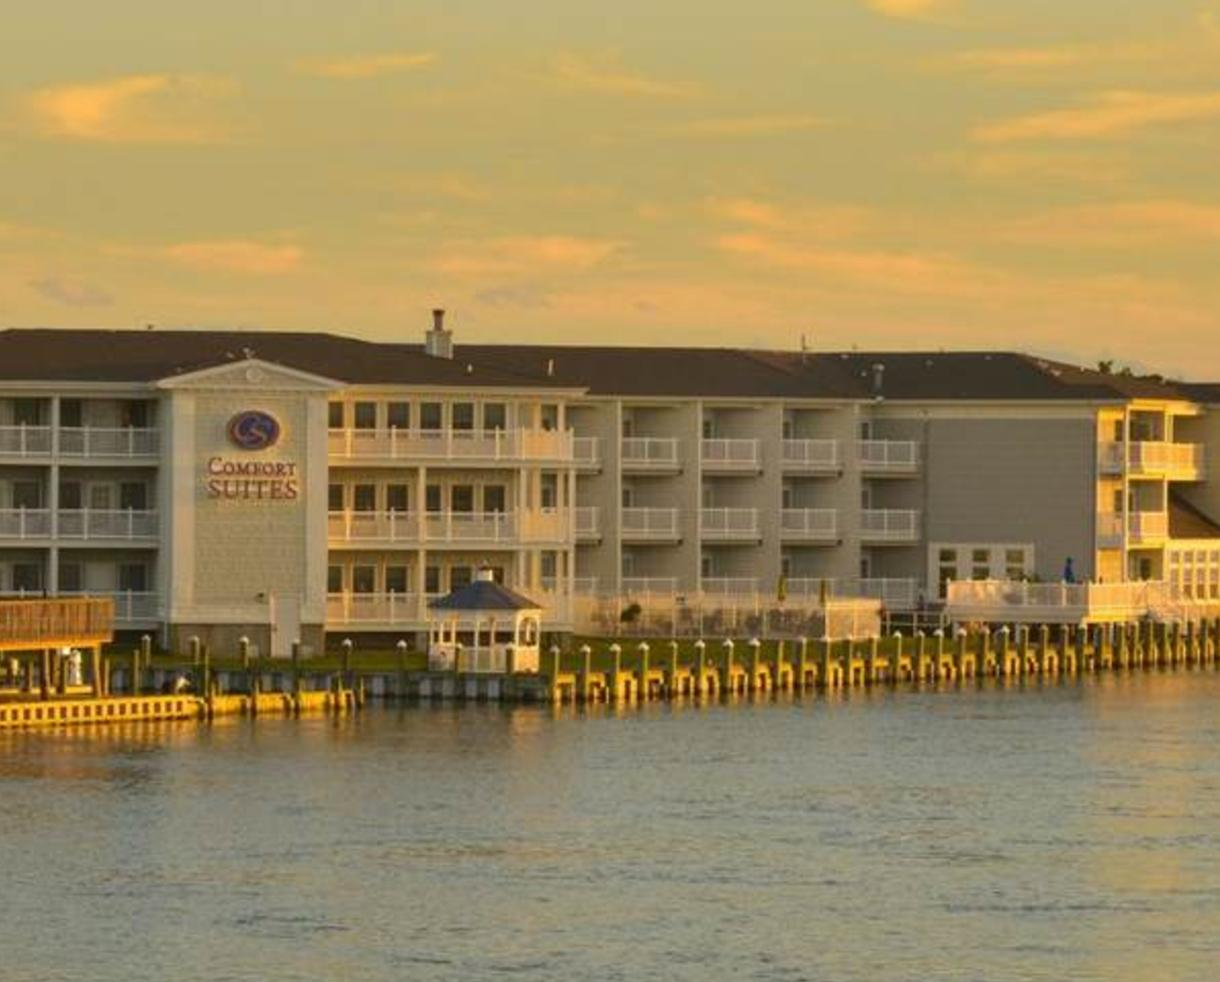 $179 for 2-Night Waterfront Chincoteague, VA Escape with Hot Breakfast Each Day! ($260 Value - 32% Off)